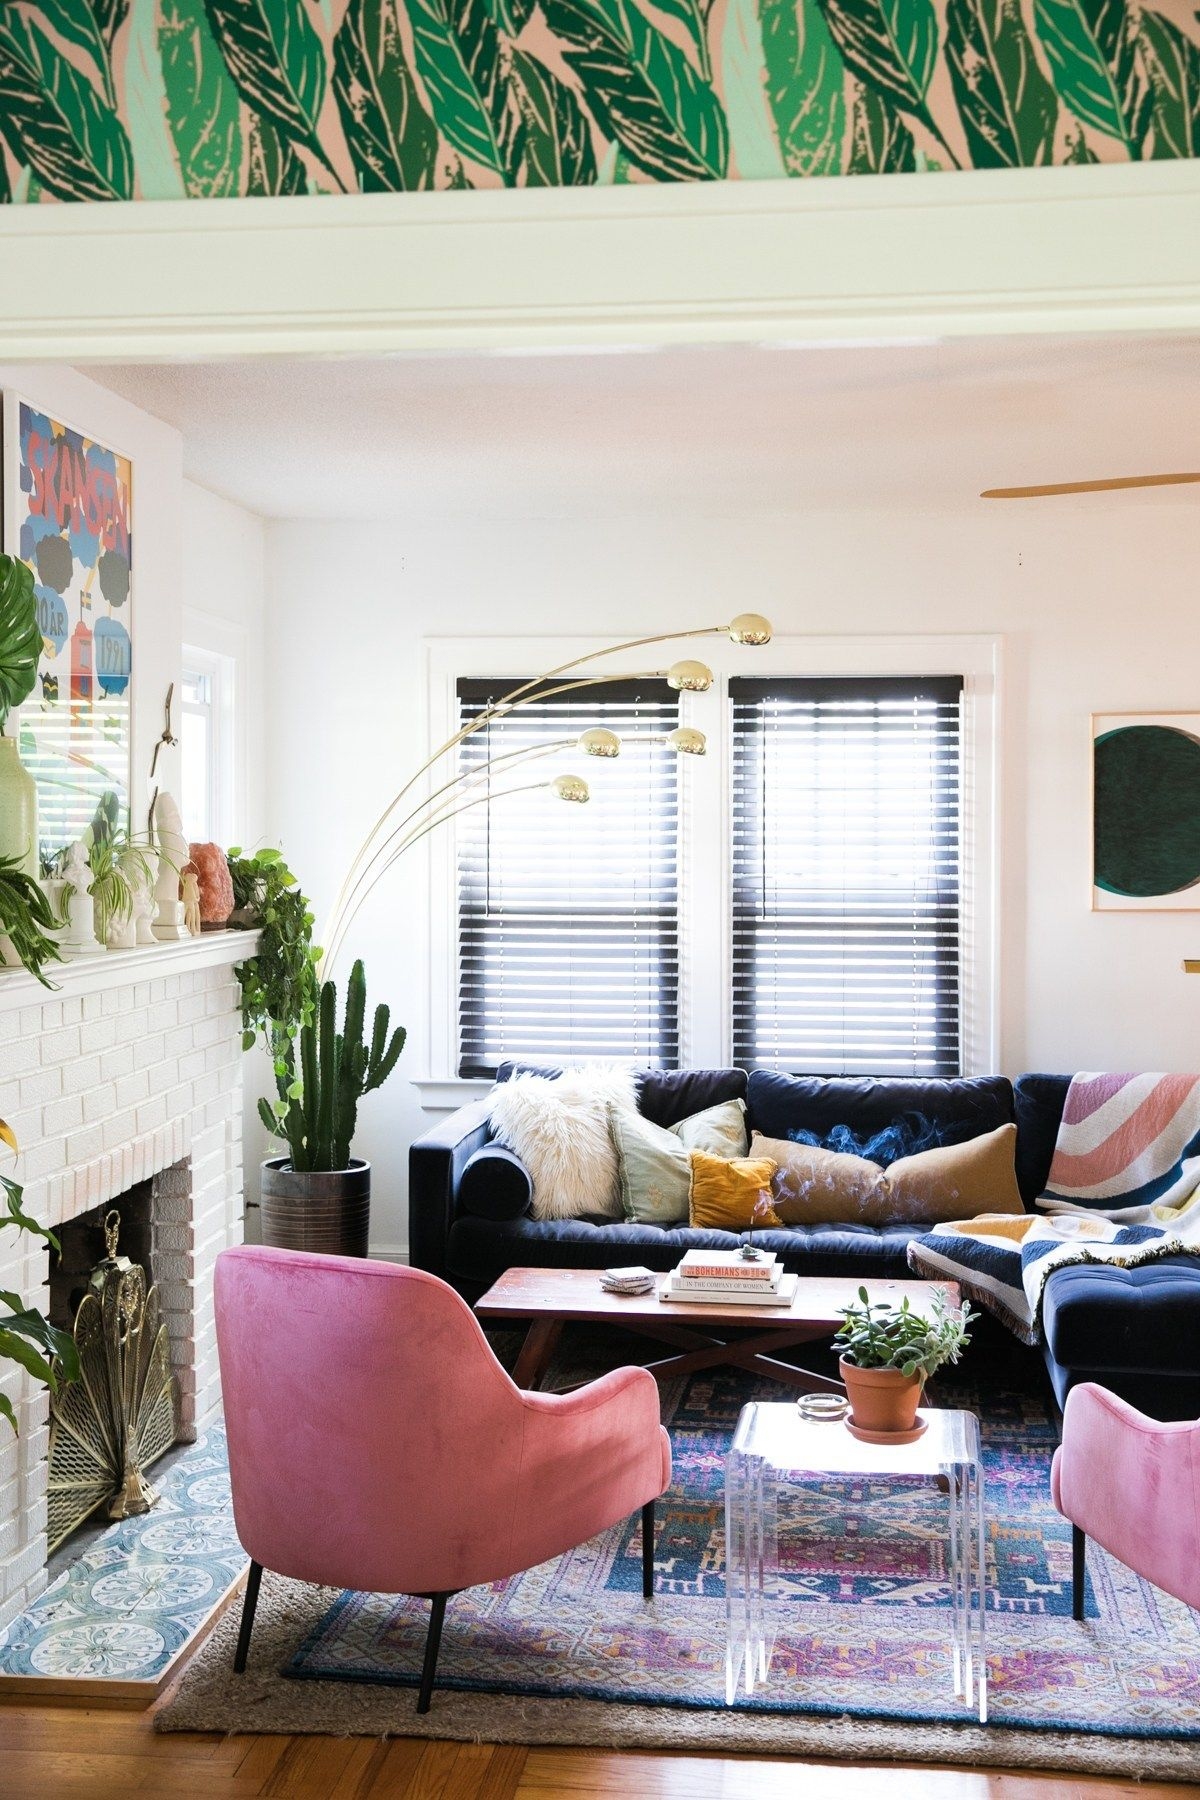 The Eclectic Glamazon Home Tour Summer 2019 Jessica Brigham